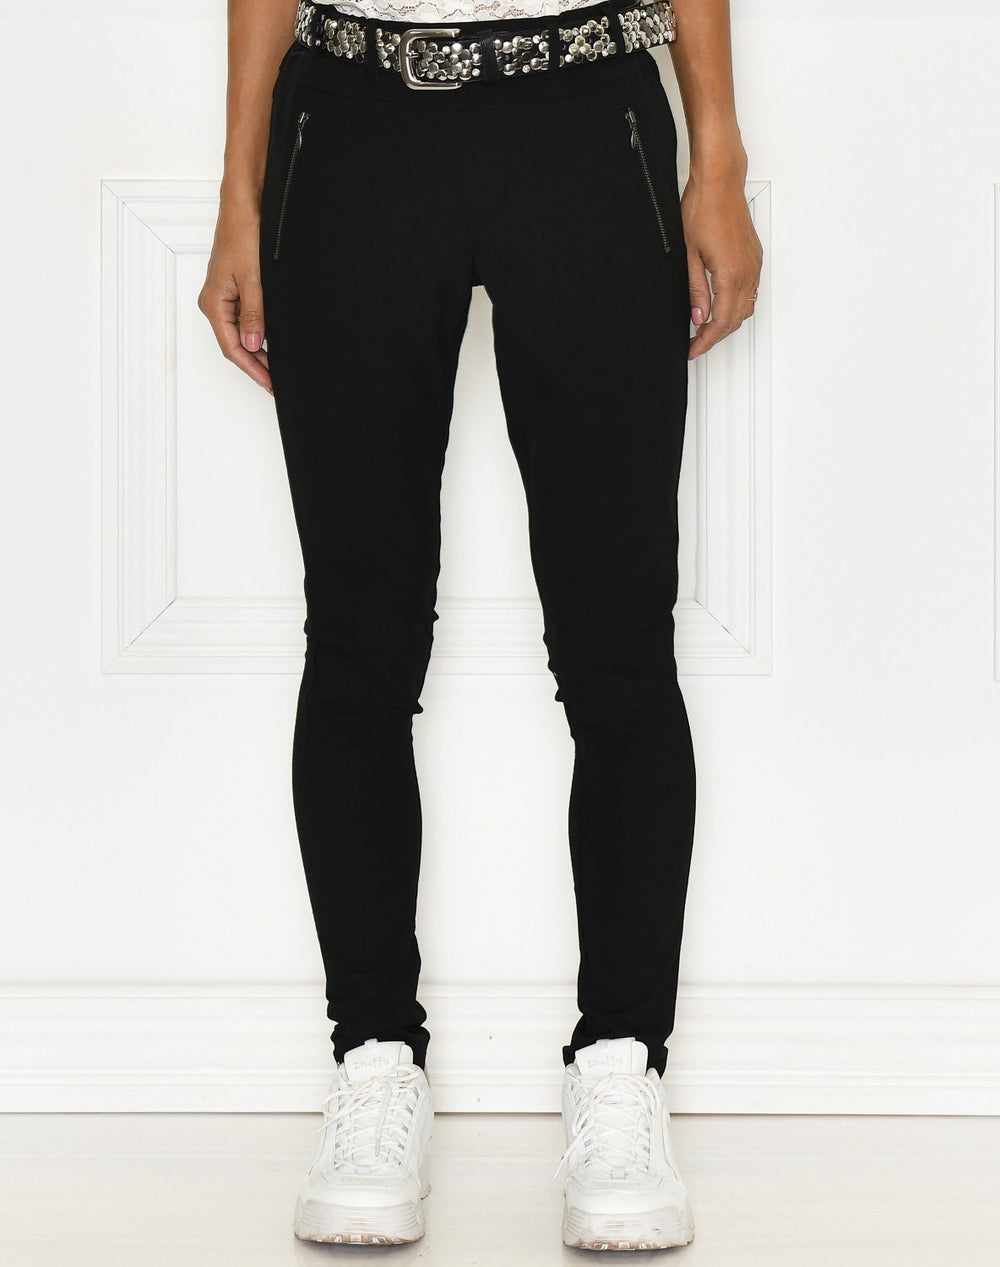 Kaffe Jillian vilja pants black deep - Online-Mode